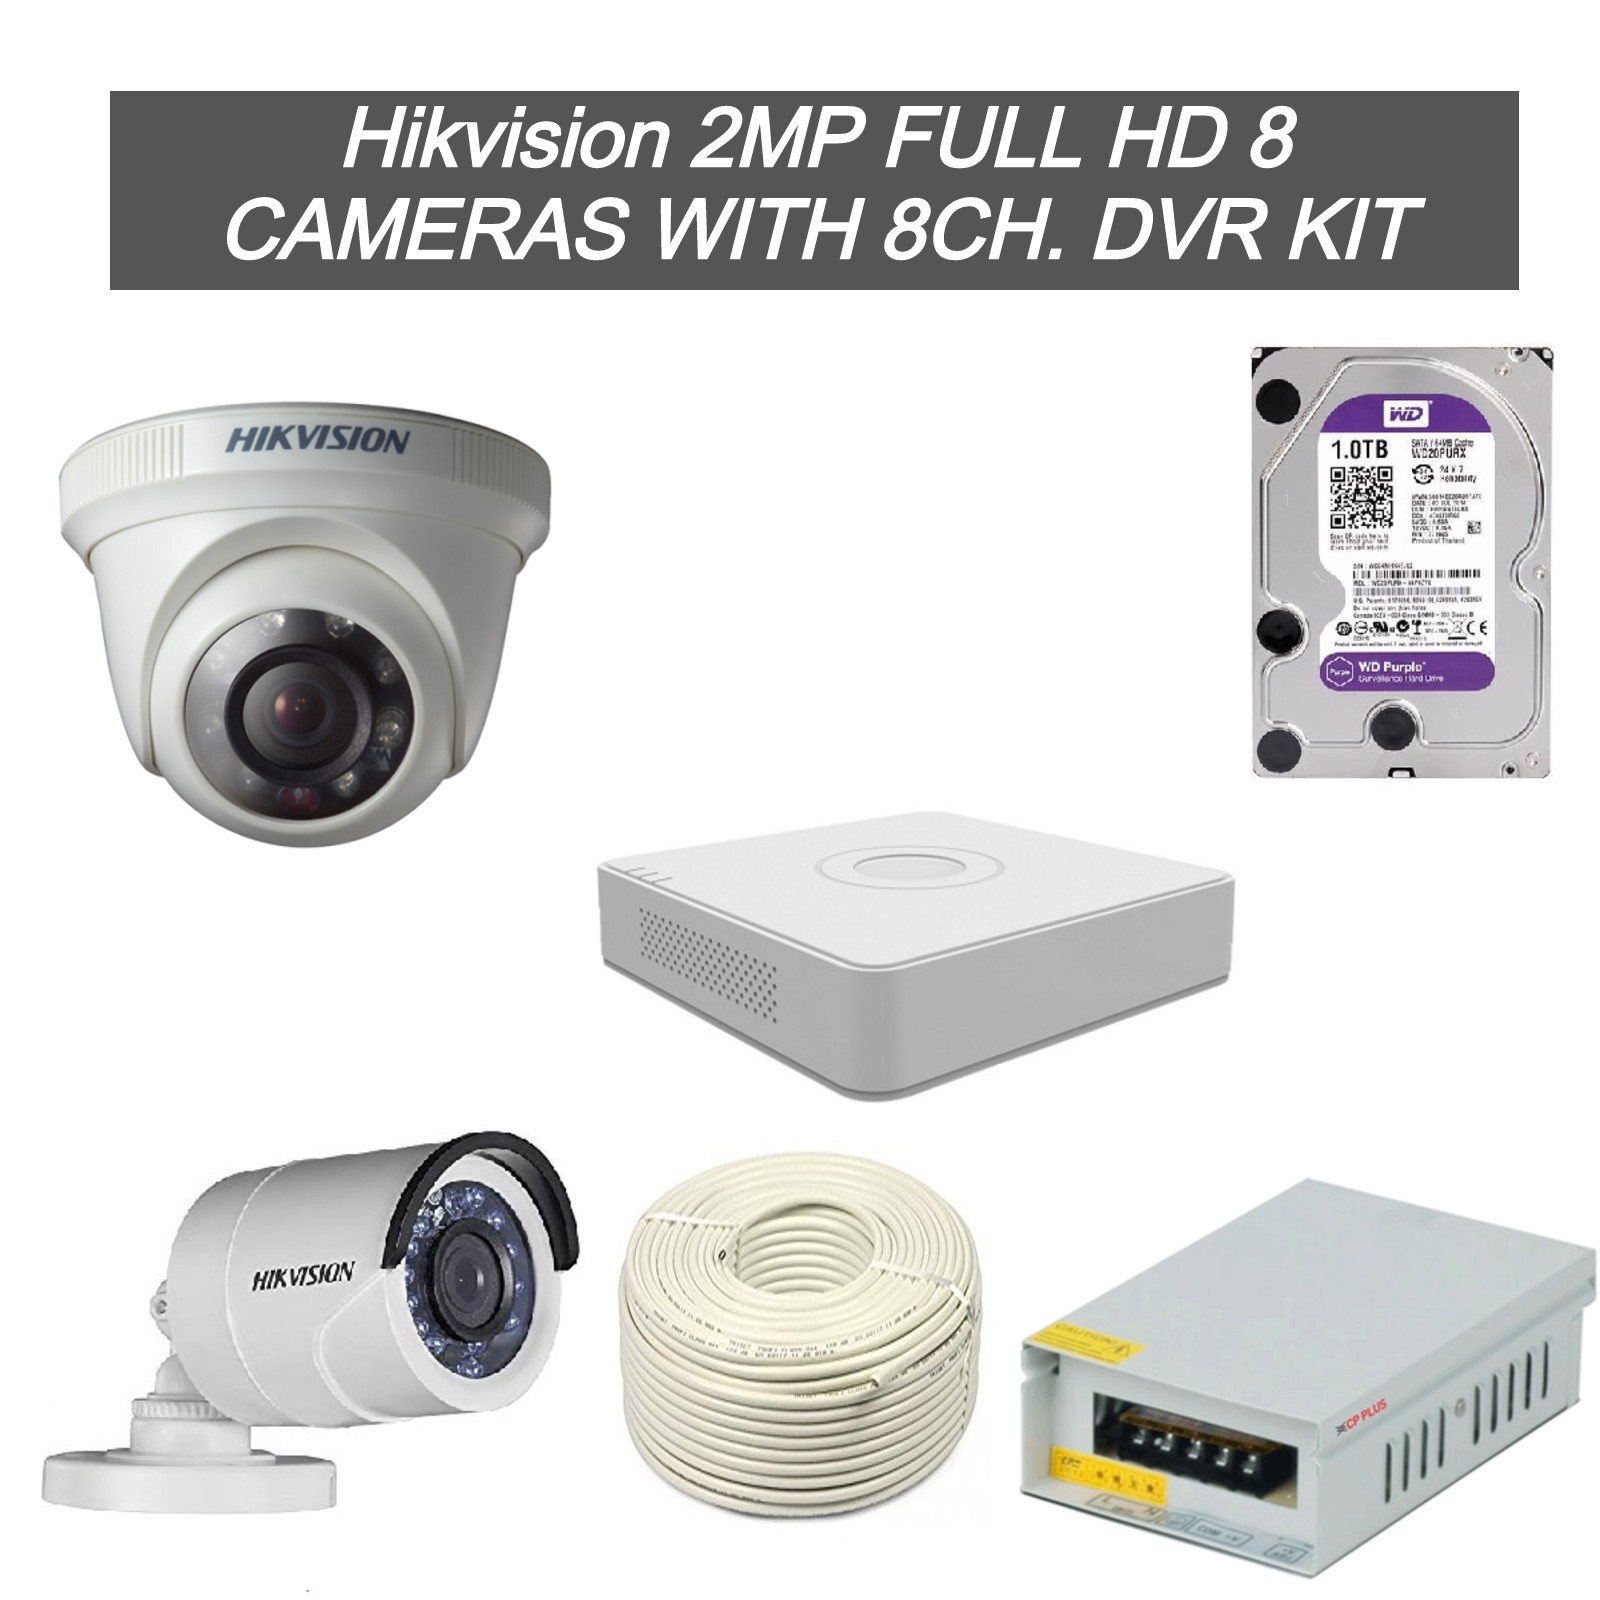 Hikvision 2MP Full HD 8 CCTV Cameras with 8Ch. DVR Kit